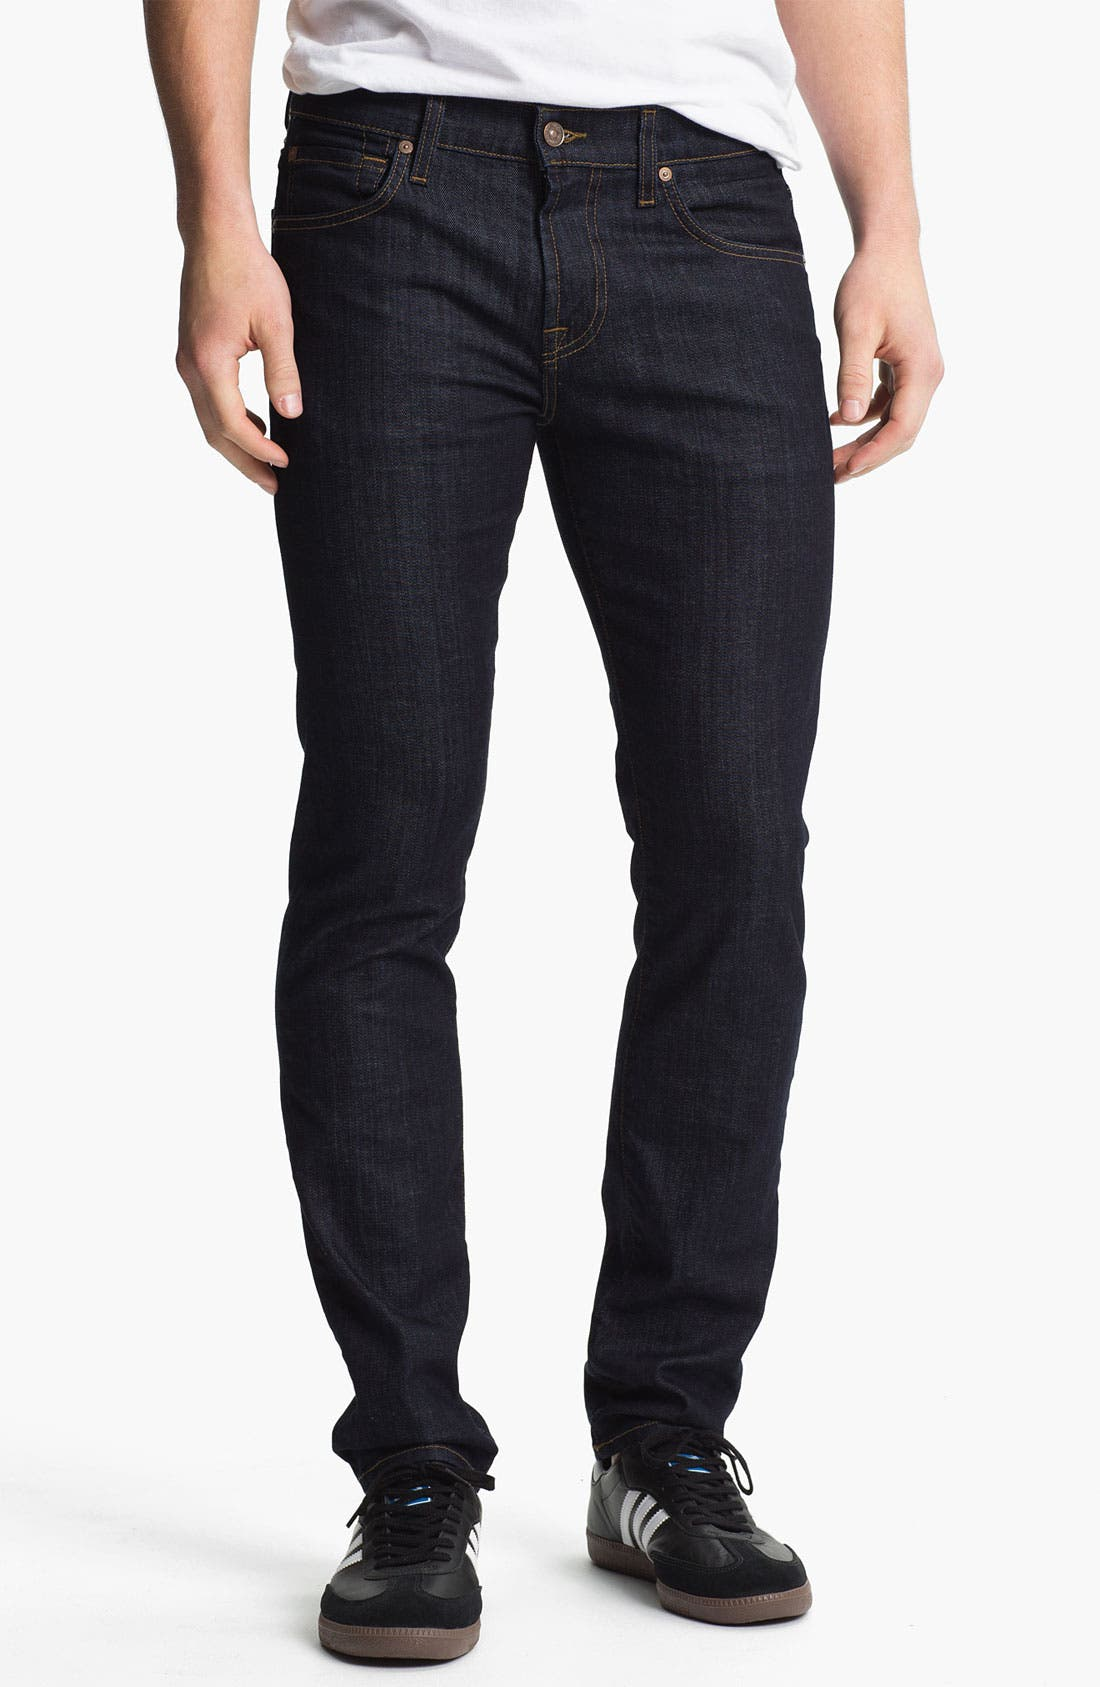 Main Image - 7 For All Mankind® 'Paxtyn' Skinny Fit Jeans (Dark & Clean)